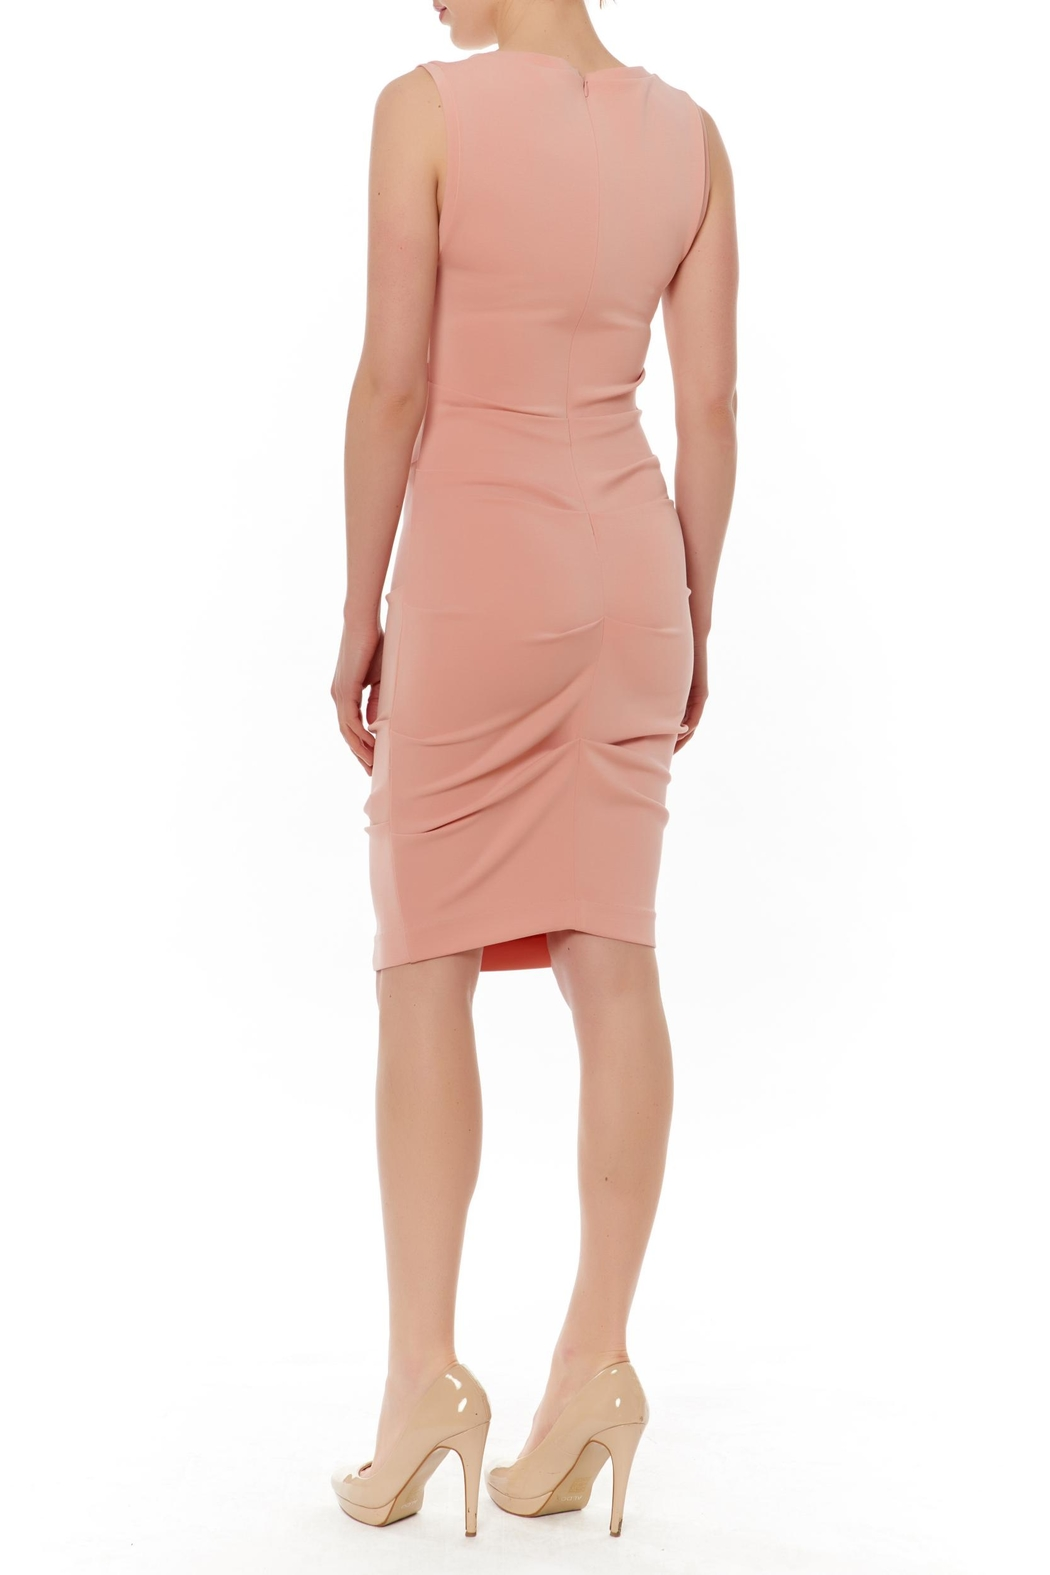 Nicole Miller Jersey Ruched Dress - Front Full Image